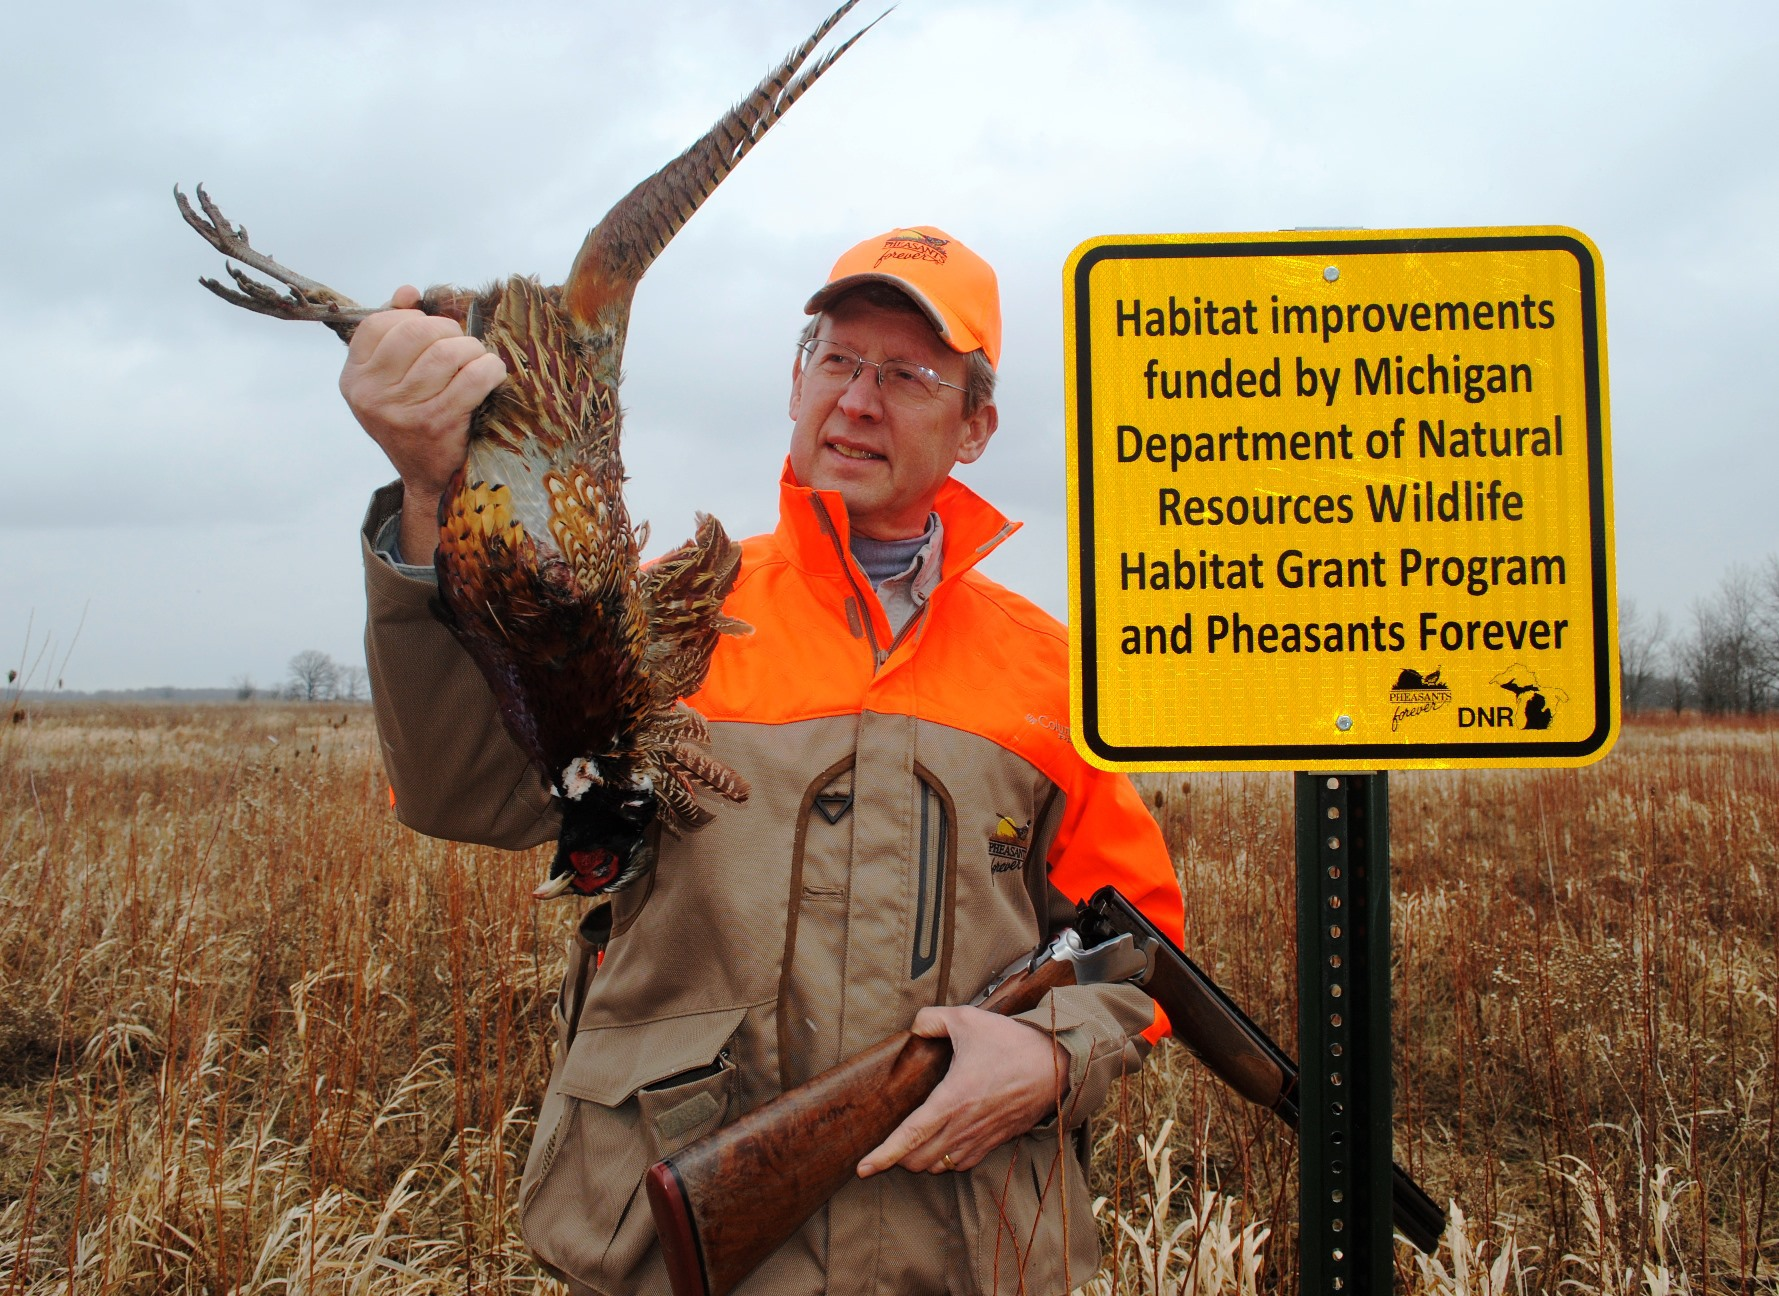 Dressed in hunting clothes, Bill Vander Zouwen, Michigan Region representative for Pheasants Forever, looks at a male pheasant he shot.